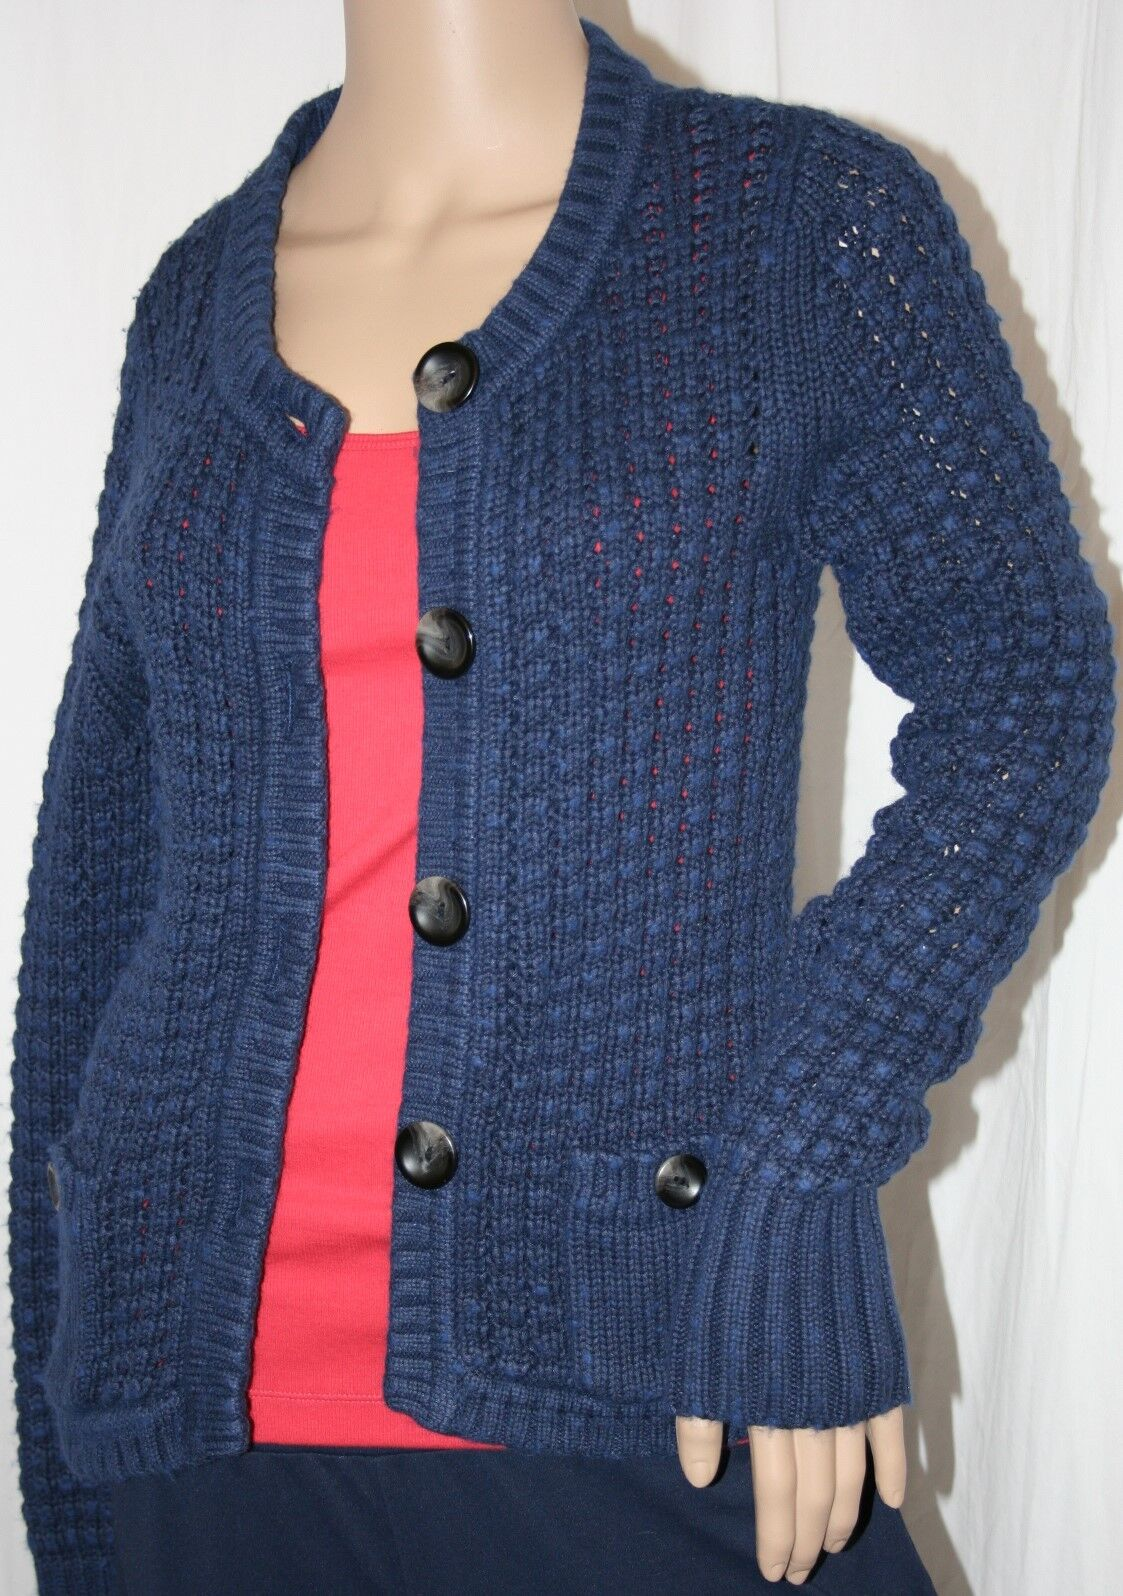 EDDIE BAUER LARGE CABLE KNIT BUTTON UP CARDIGAN NAVY SWEATER SWEATER SWEATER COTTON TOP M 4bb49d